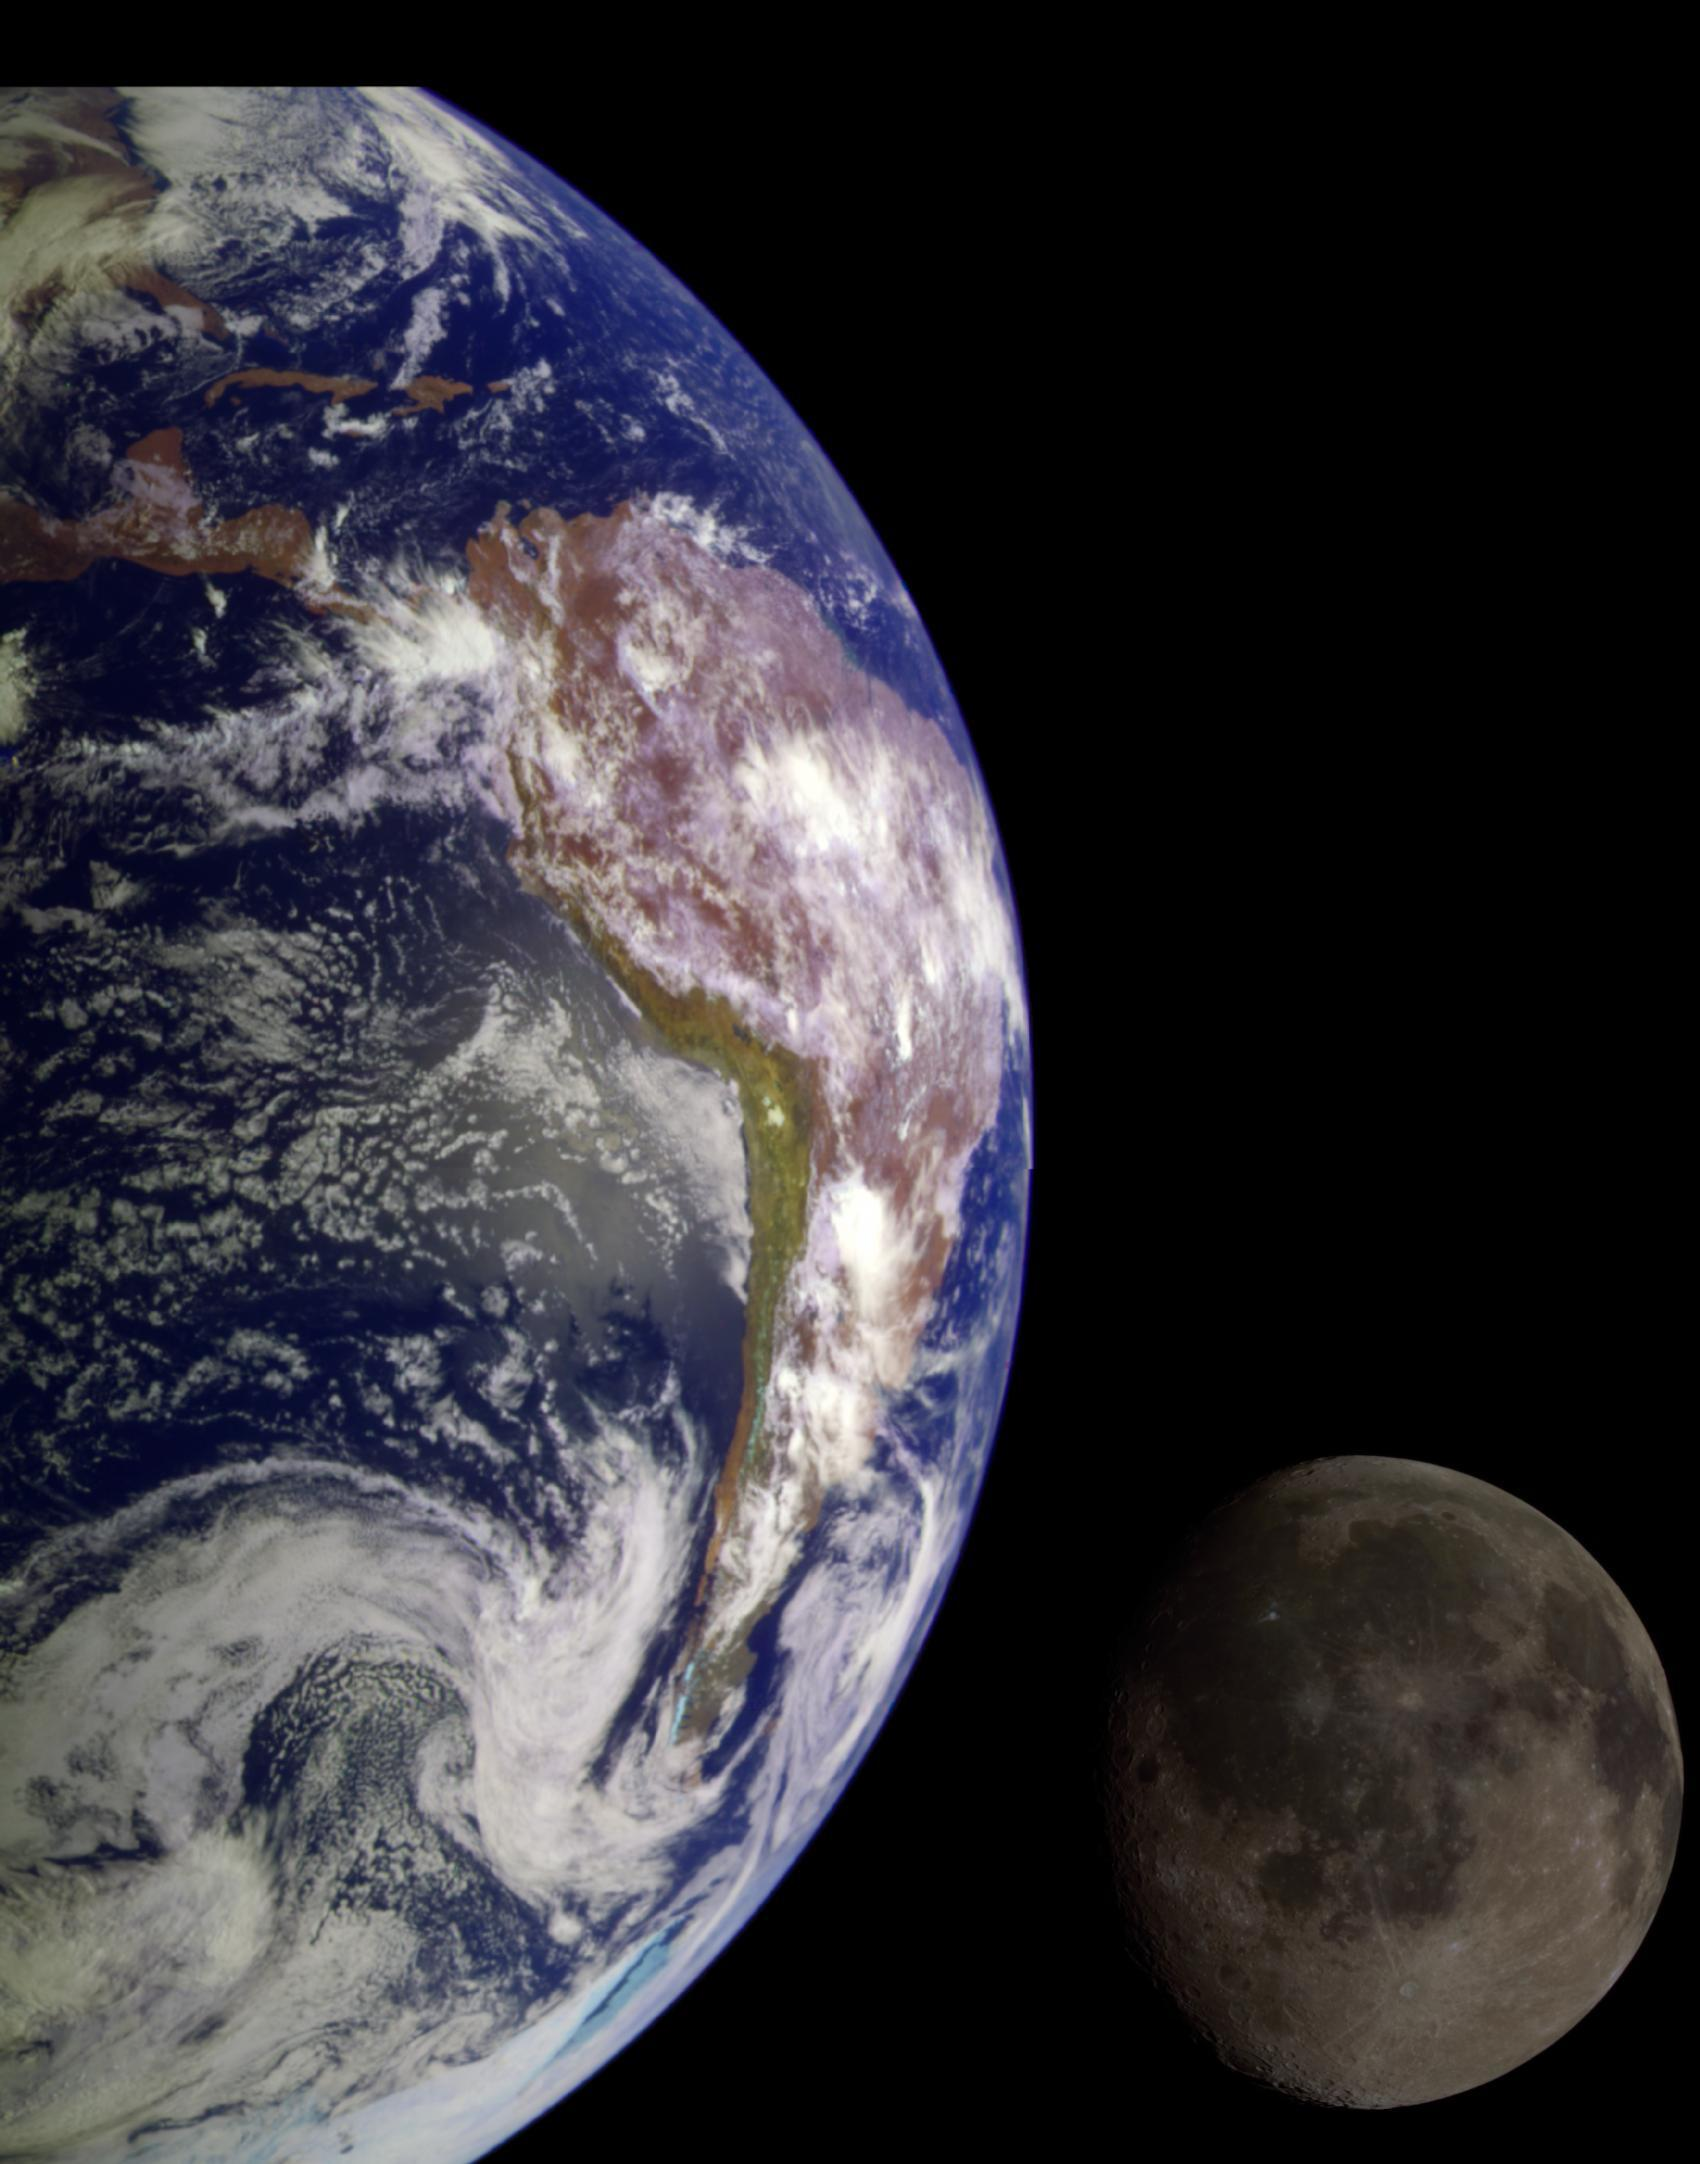 PICTURE SHOWS: During its flight, NASA's Galileo spacecraft returned images of the Earth and Moon. Separate images of the Earth and Moon were combined to generate this view. (1998)  ...   Prepare to have your mind blown - NASA has collected together a treasure trove of more than 140,000 images, videos and audio files.  The stunning collection consolidates imagery spread across more than 60 collections into one searchable location, called the NASA Image and Video Library website.  Cover Images have chosen a gallery of the most popular images currently on the website, which include the first American astronaut to walk in space and a self-portrait of NASA's Curiosity Mars rover.  The portal allows users to search and discover content from across the agency's many missions in aeronautics, astrophysics, Earth science, human spaceflight, and more.  The library is not comprehensive, but rather provides the best of what NASA makes available from a single point of presence on the web. Additionally, it is a living website, where new and archival images, video and audio files continually will be added.  When: 04 Jun 1998